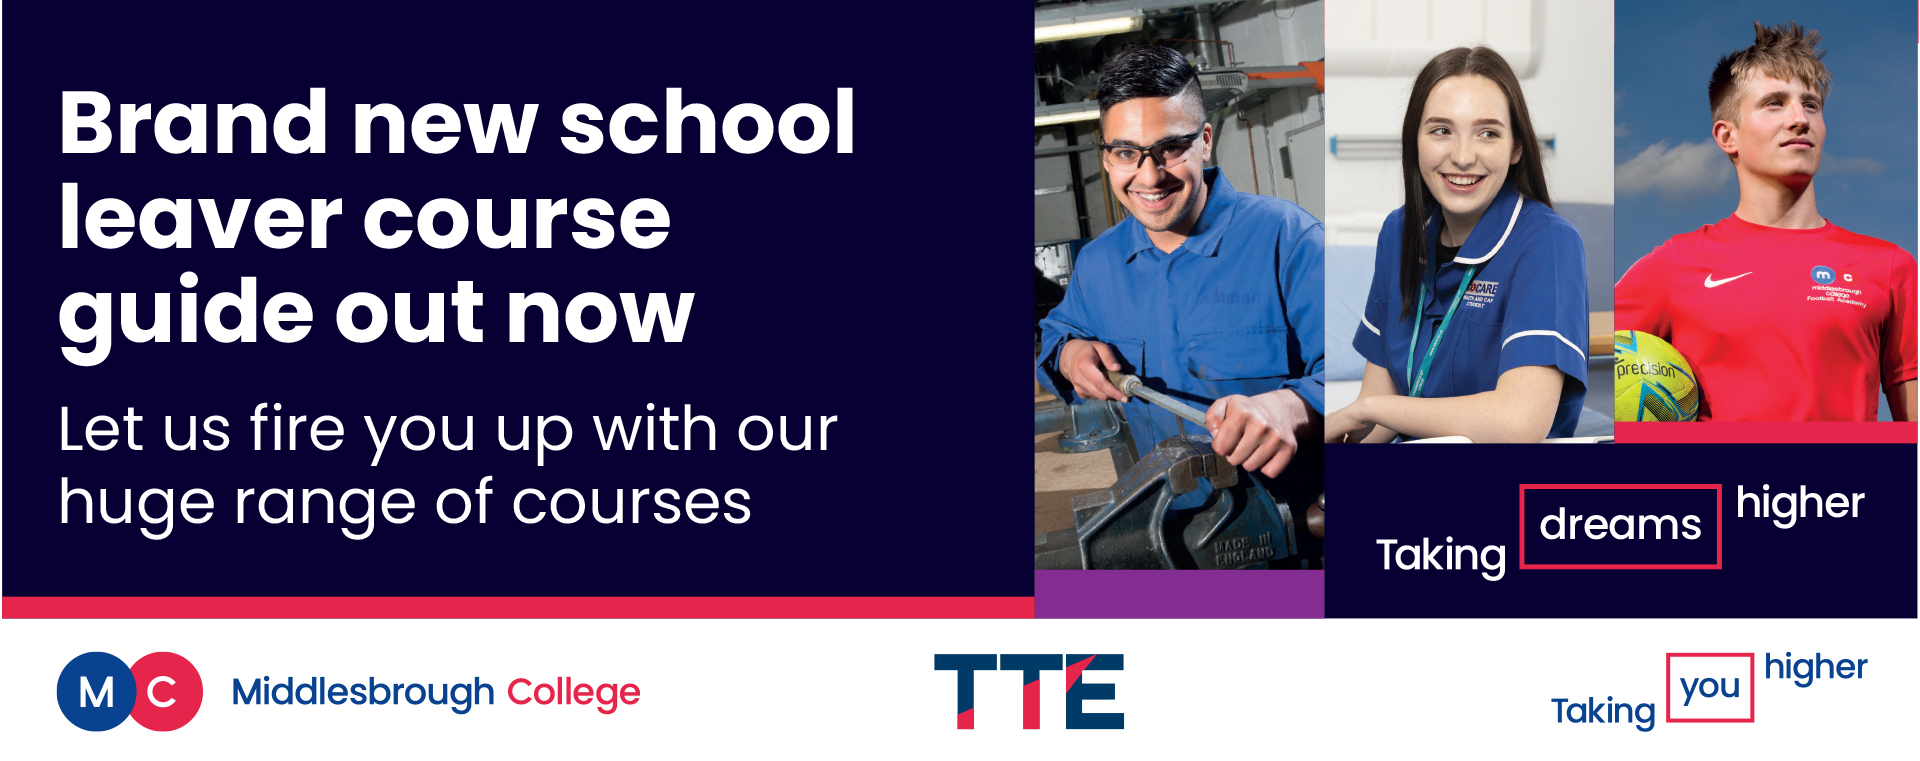 Middlesbrough College Course Guide